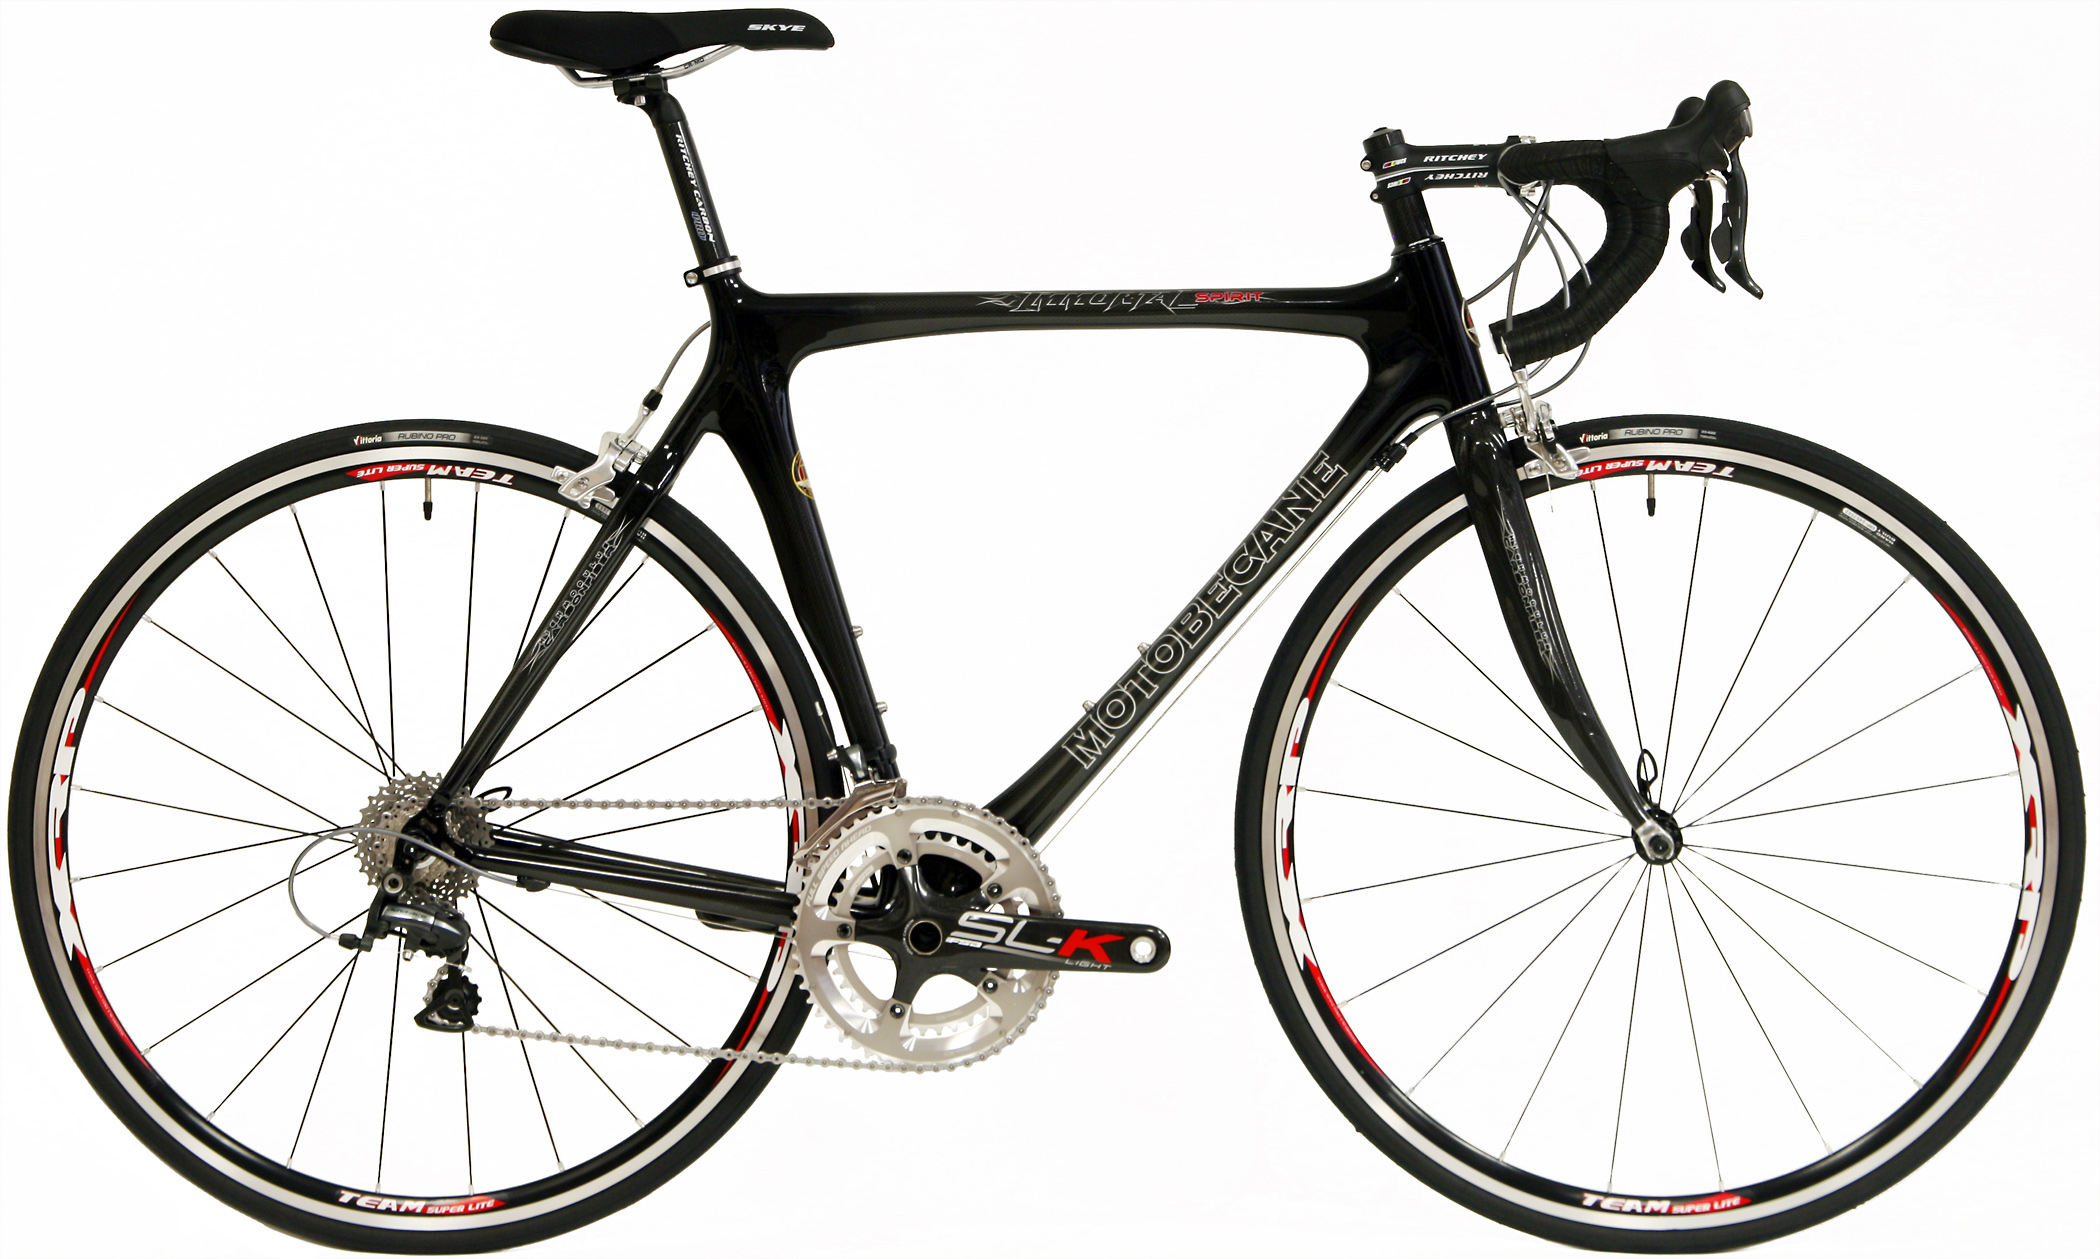 Carbon Fiber Road Bike >> Save Up To 60 Off New Shimano Dura Ace Carbon Fiber Road Bikes